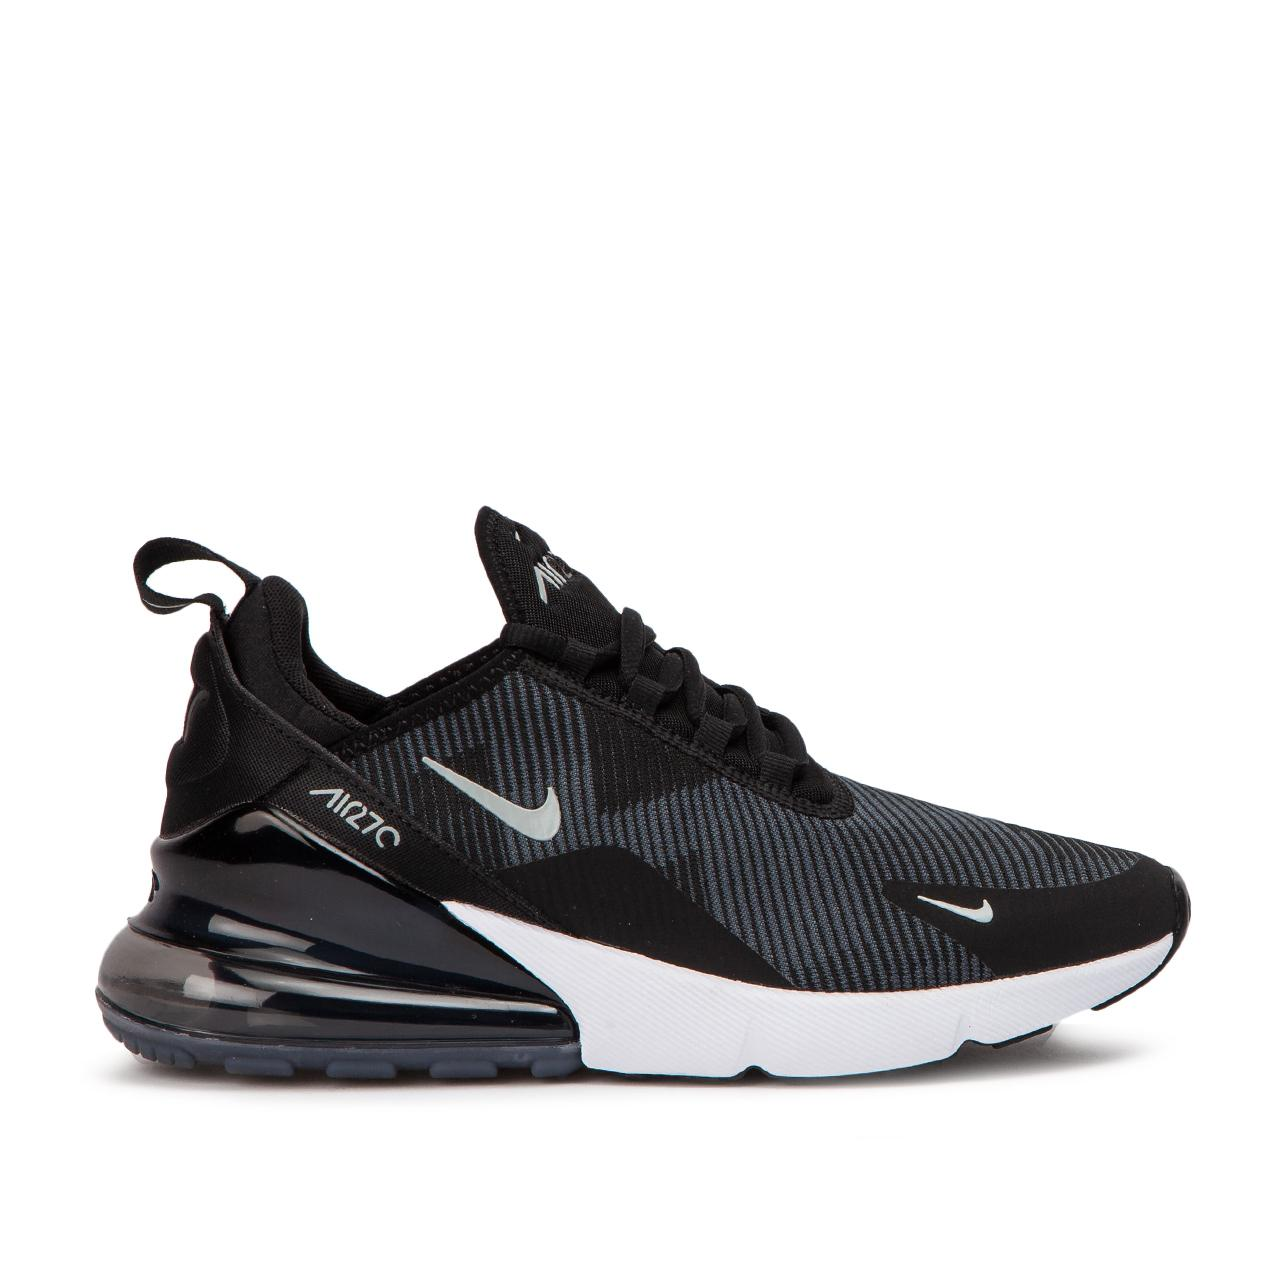 eaad87249665 Lyst - Nike Nike Air Max 270 Knit Jacquard Gs in Brown for Men